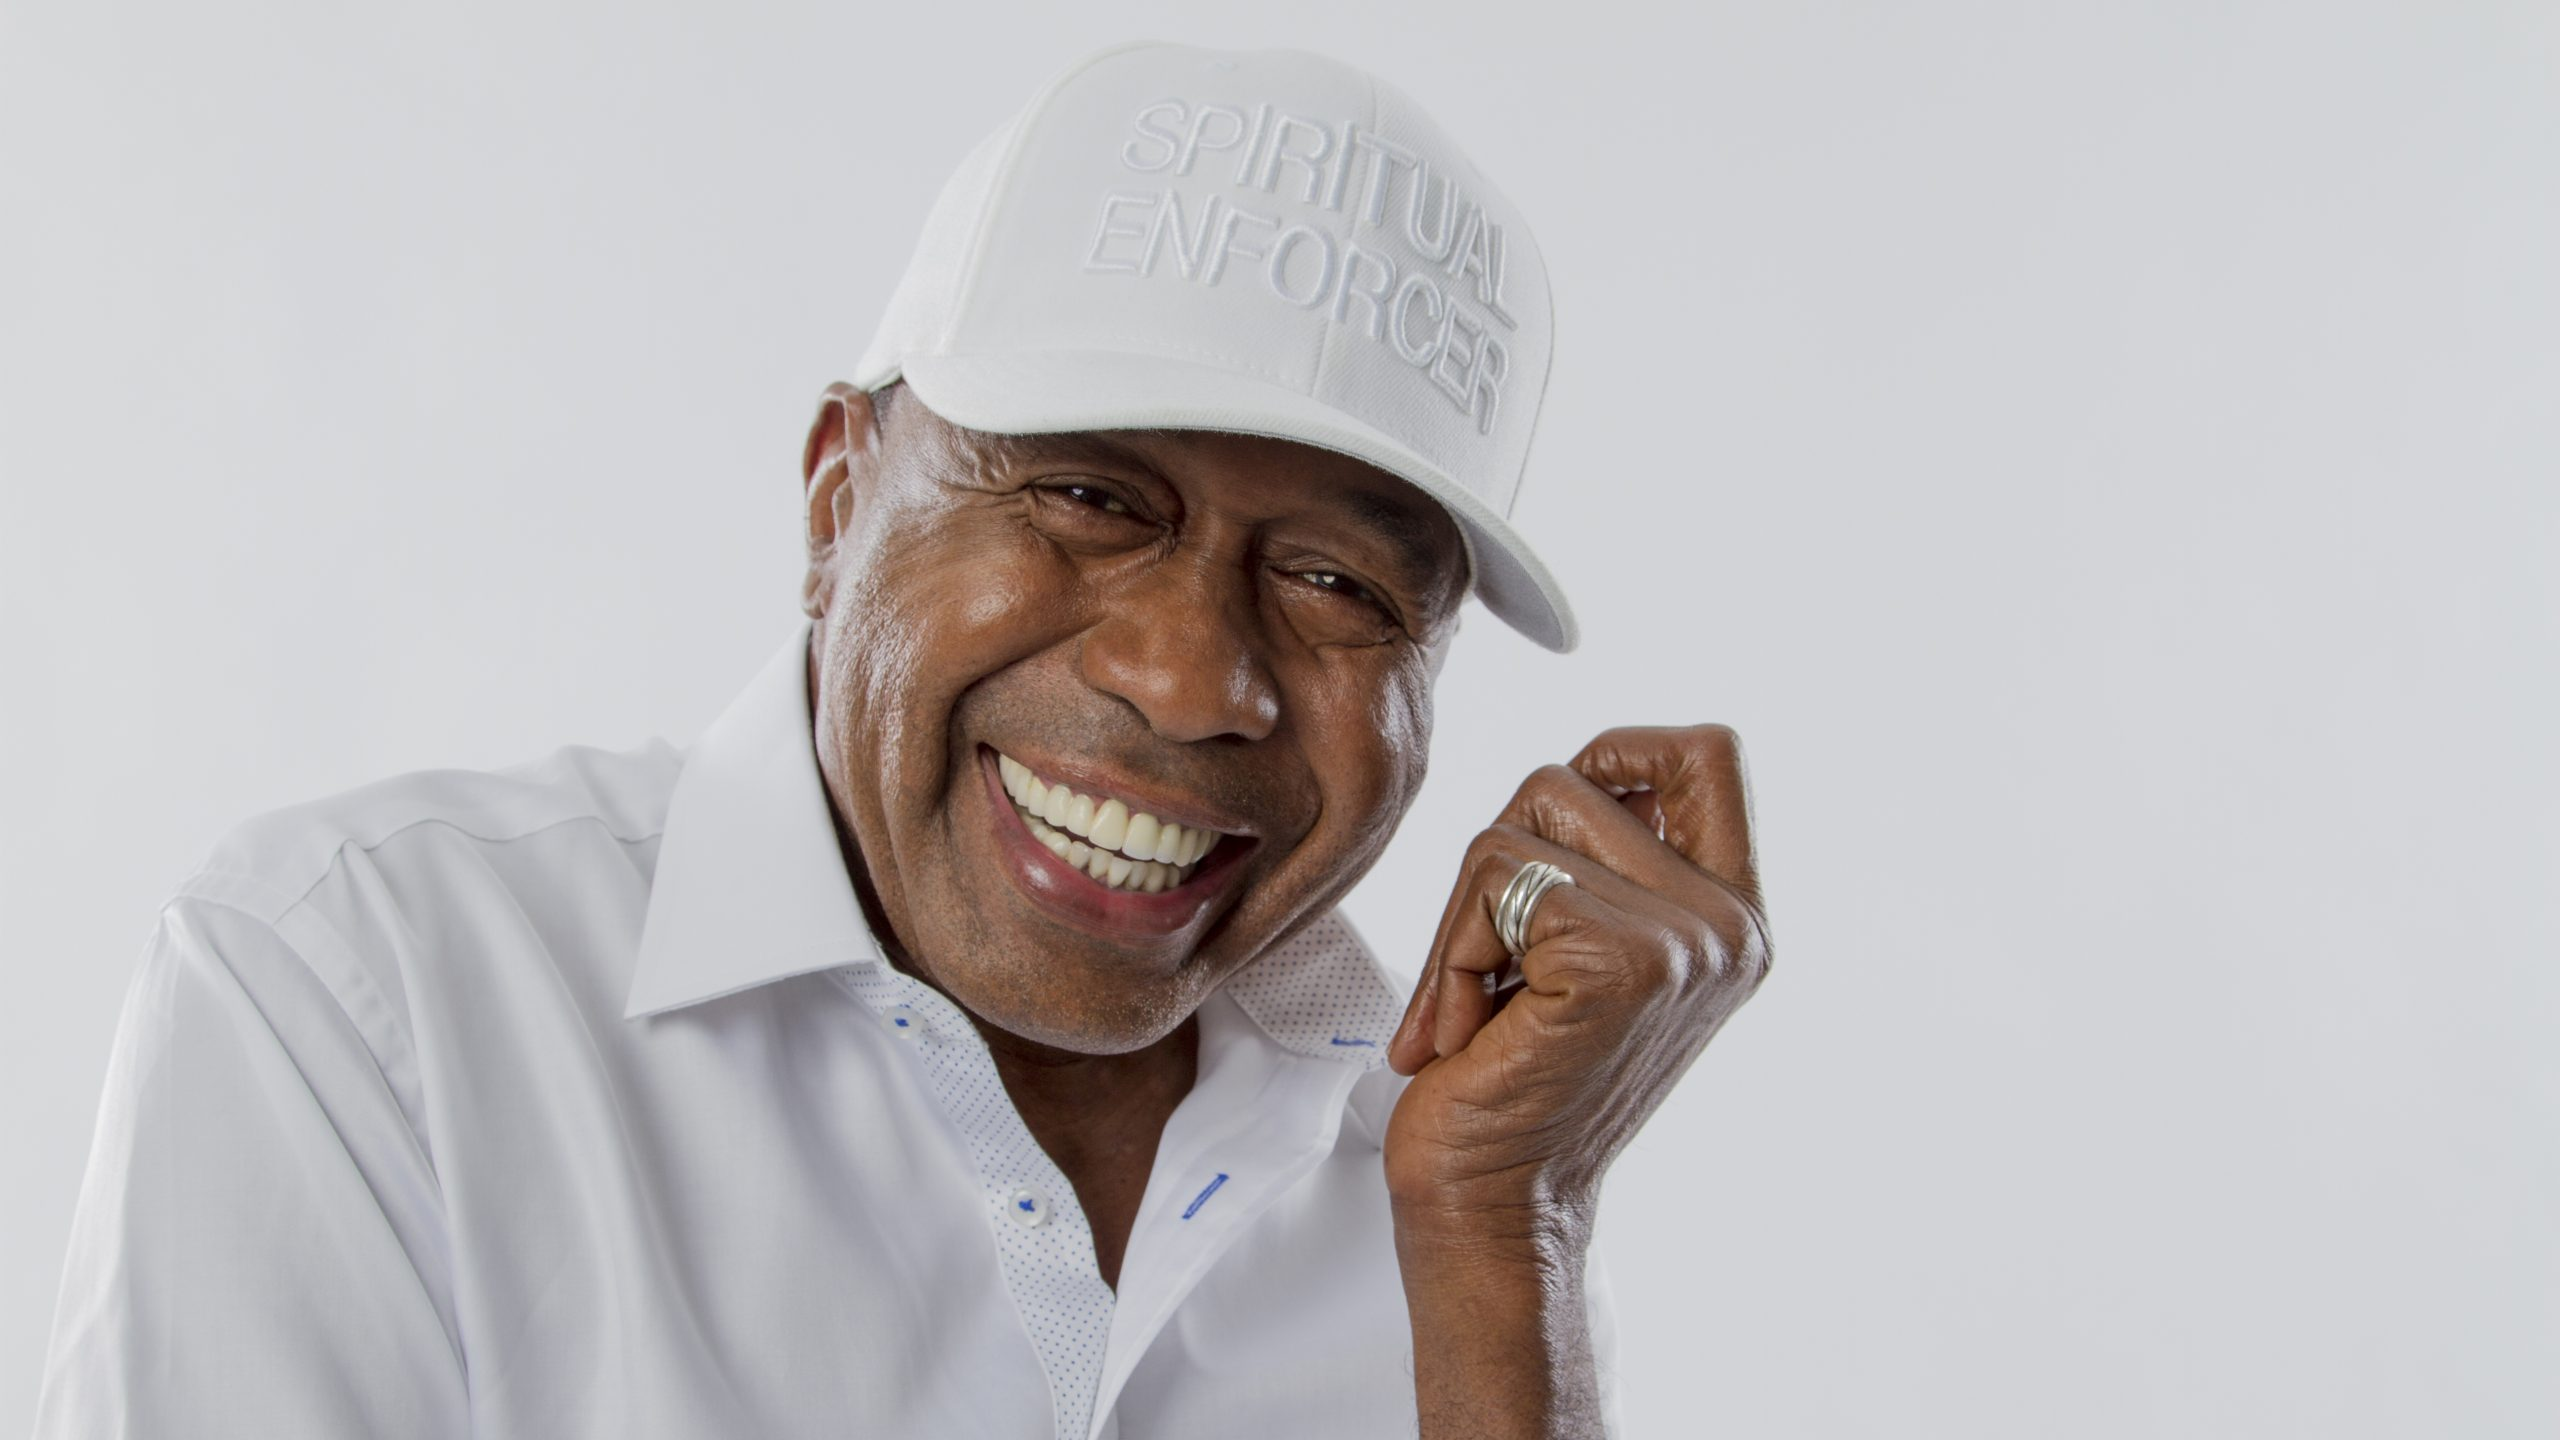 Tony Award winner Ben Vereen coming to Tuskegee University to talk about 'Roots'